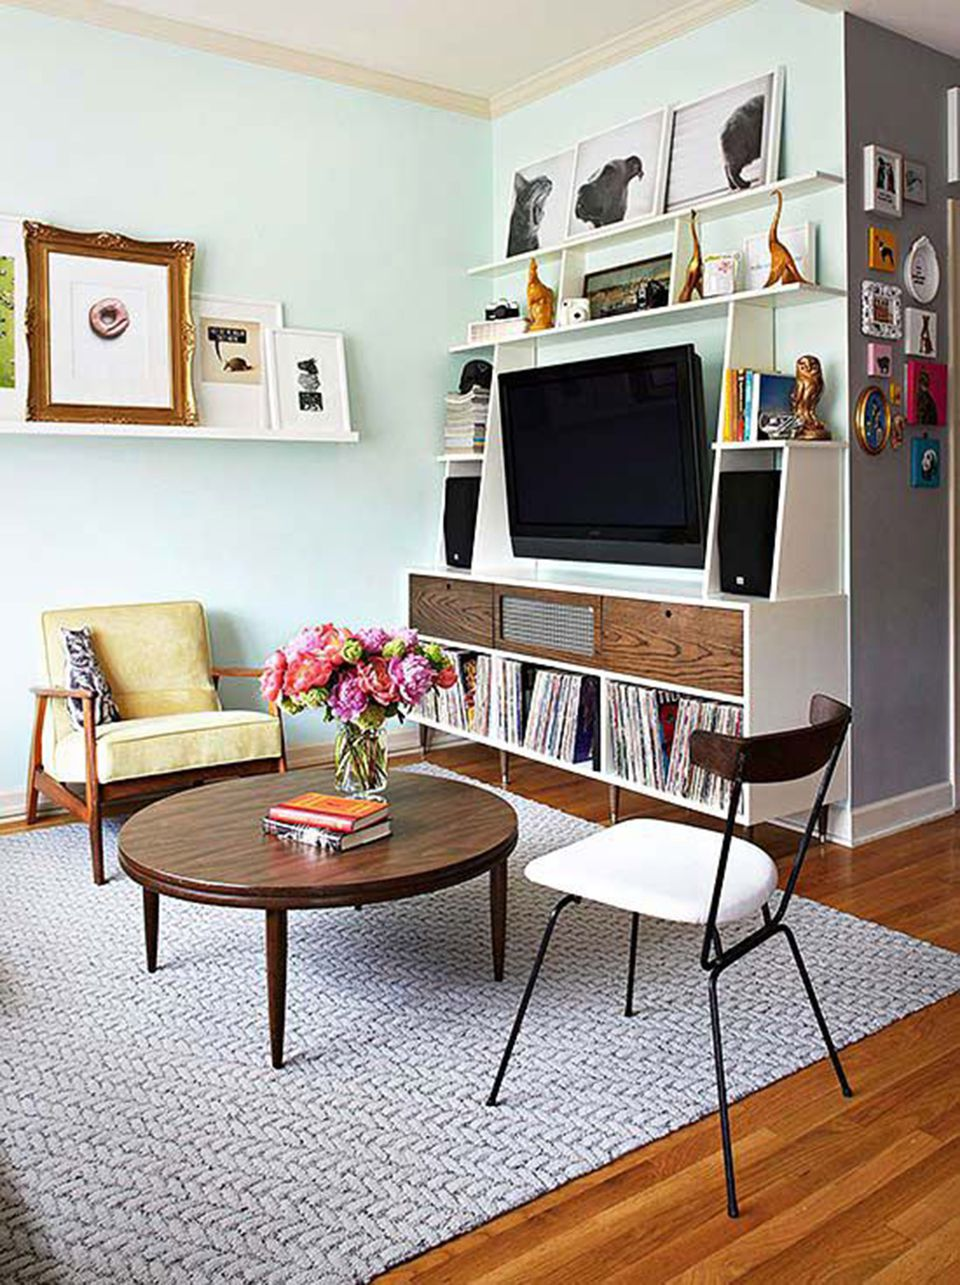 6 tips for decorating a small space - Small space design tips decoration ...